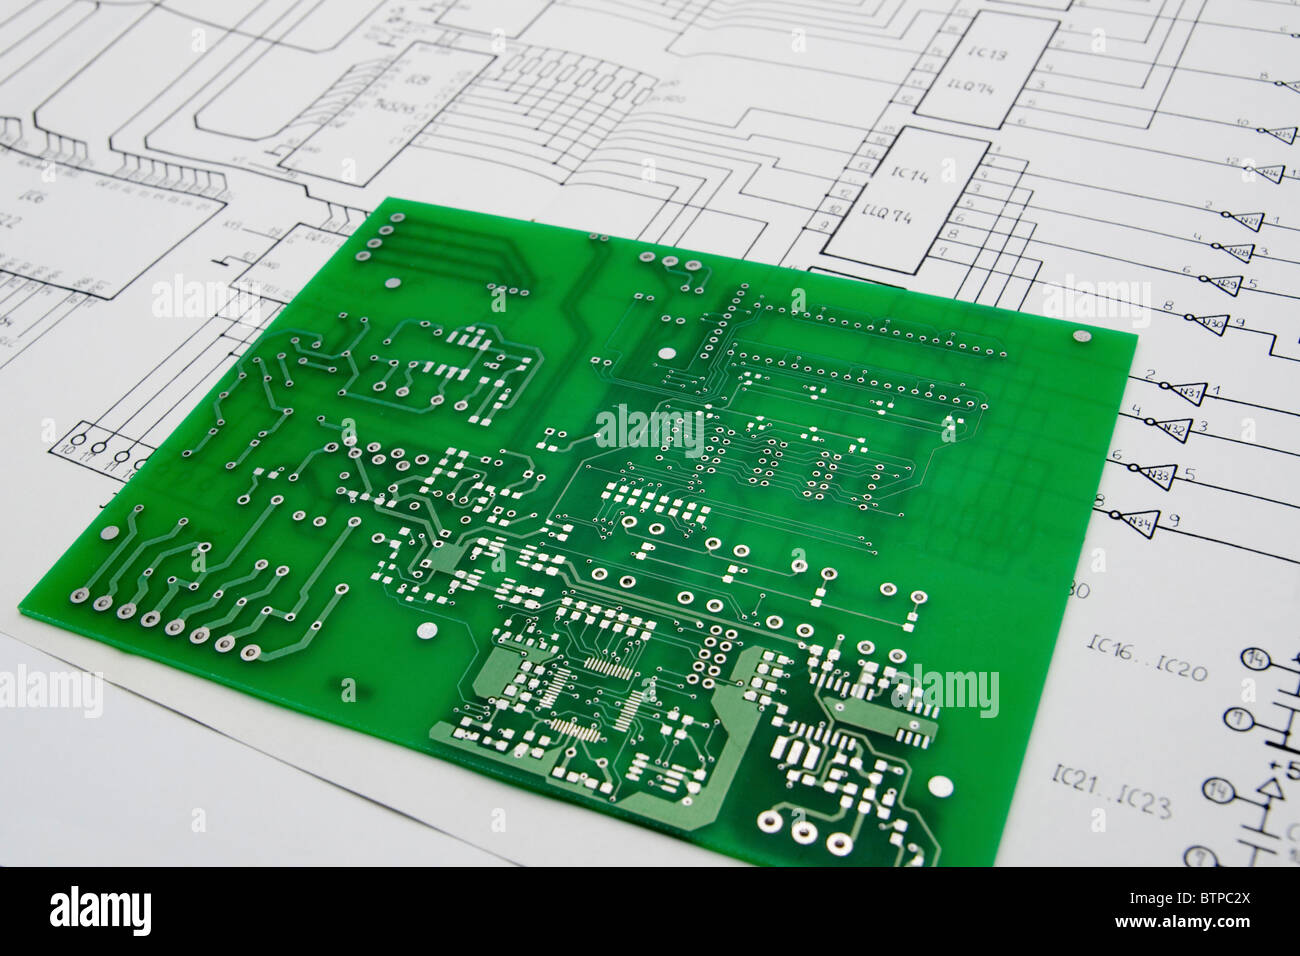 Groovy Printed Circuit Board And Schematic Stock Photo 32454546 Alamy Wiring Cloud Brecesaoduqqnet